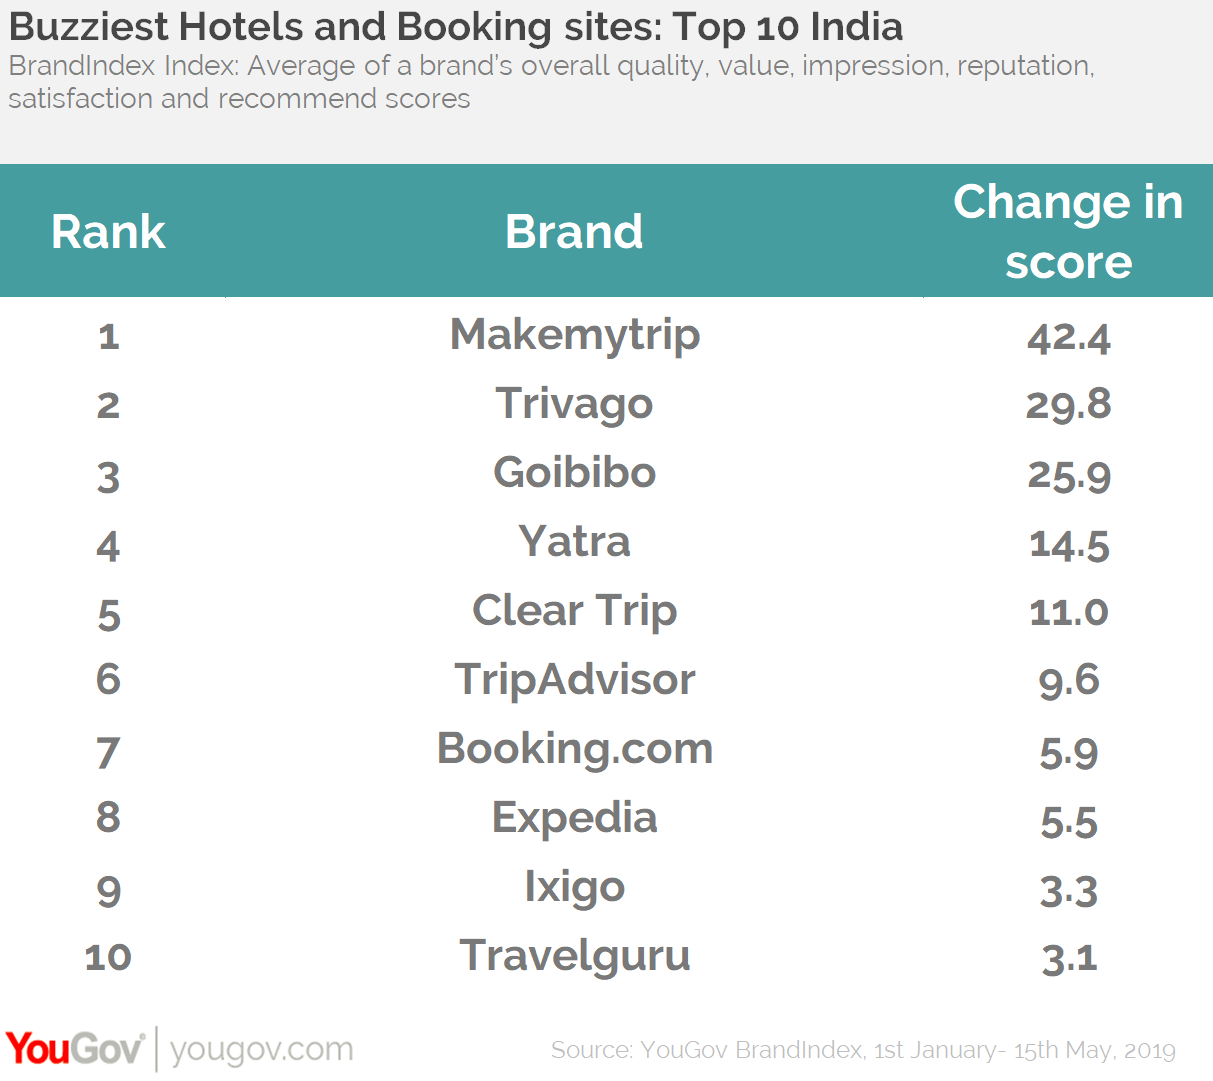 Buzziest travel and booking brands